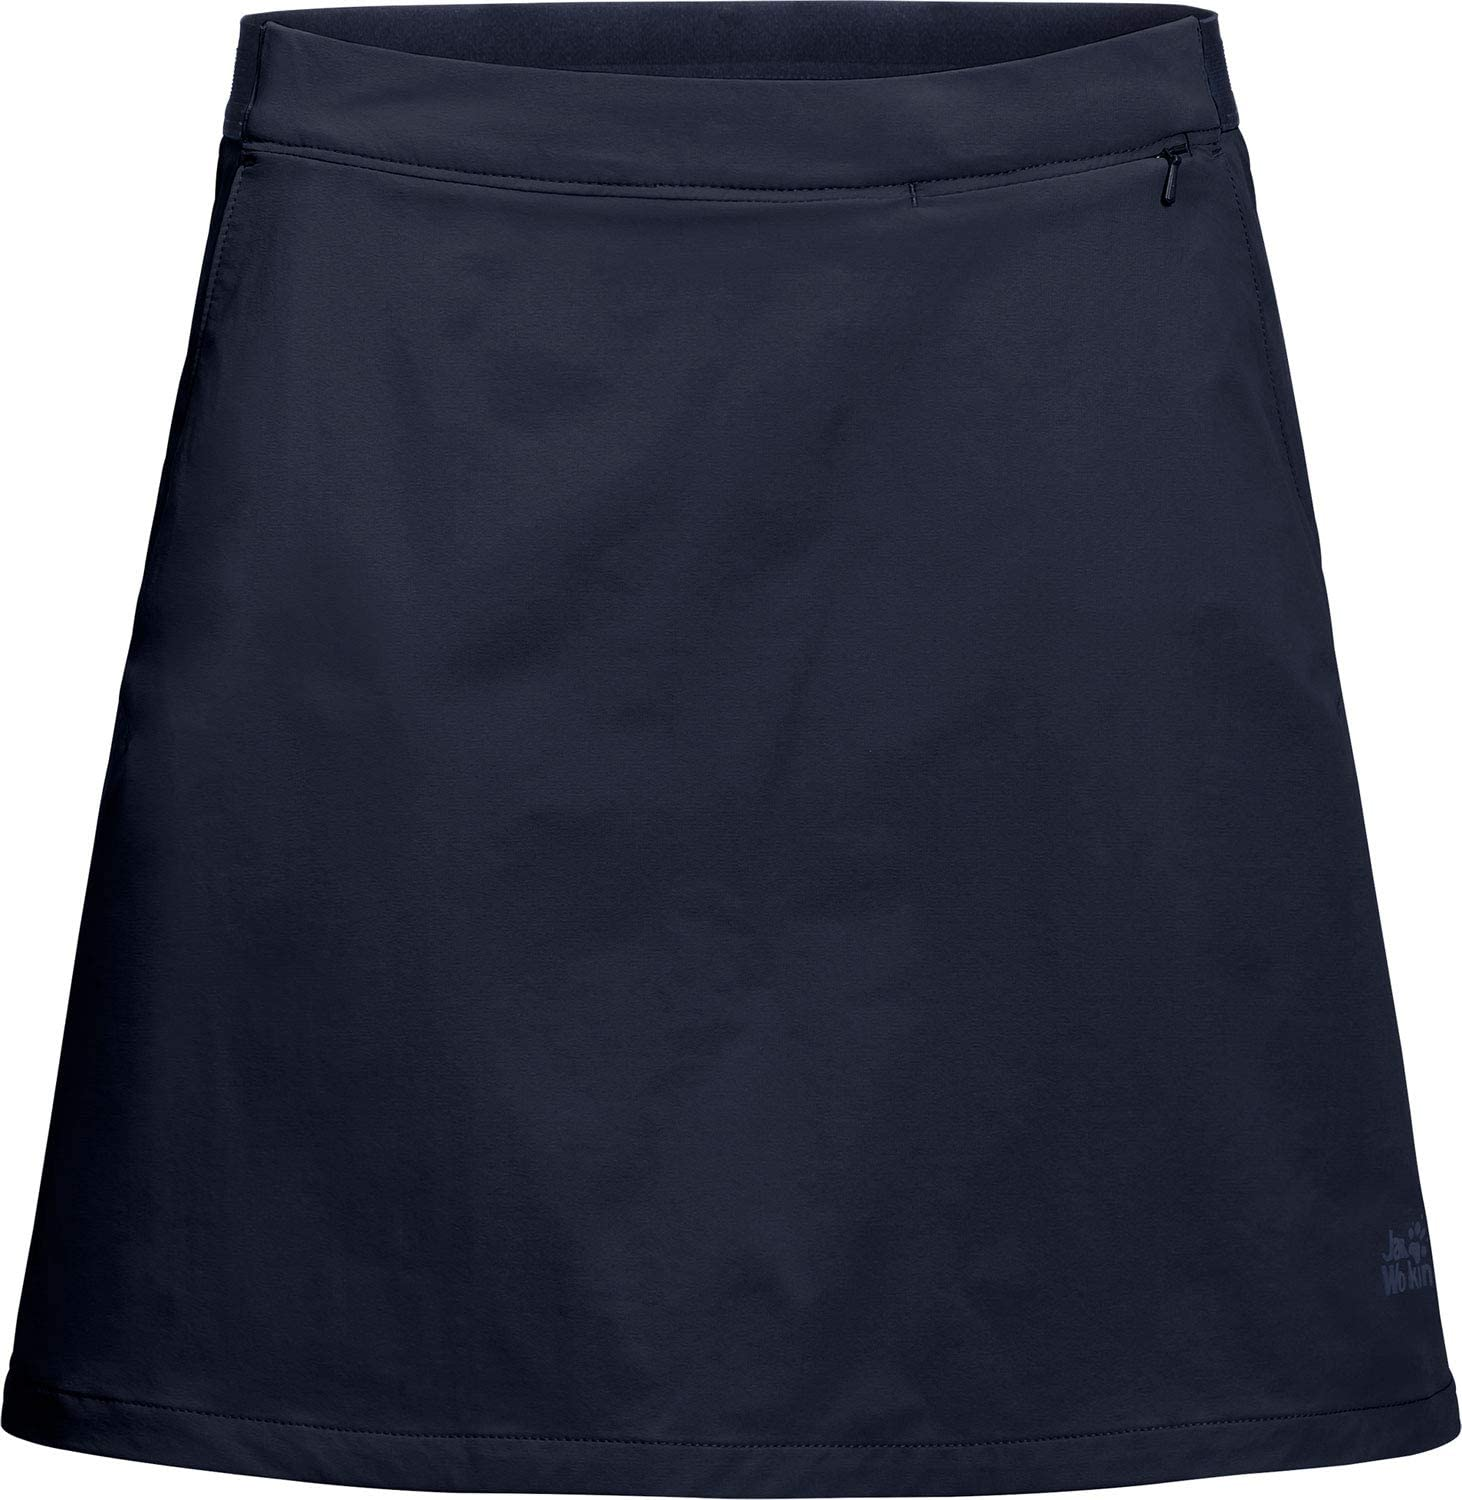 Jack Wolfskin Women's Hilltop Trail Skort W Athletic Skort Midnight Blue XXL Reg